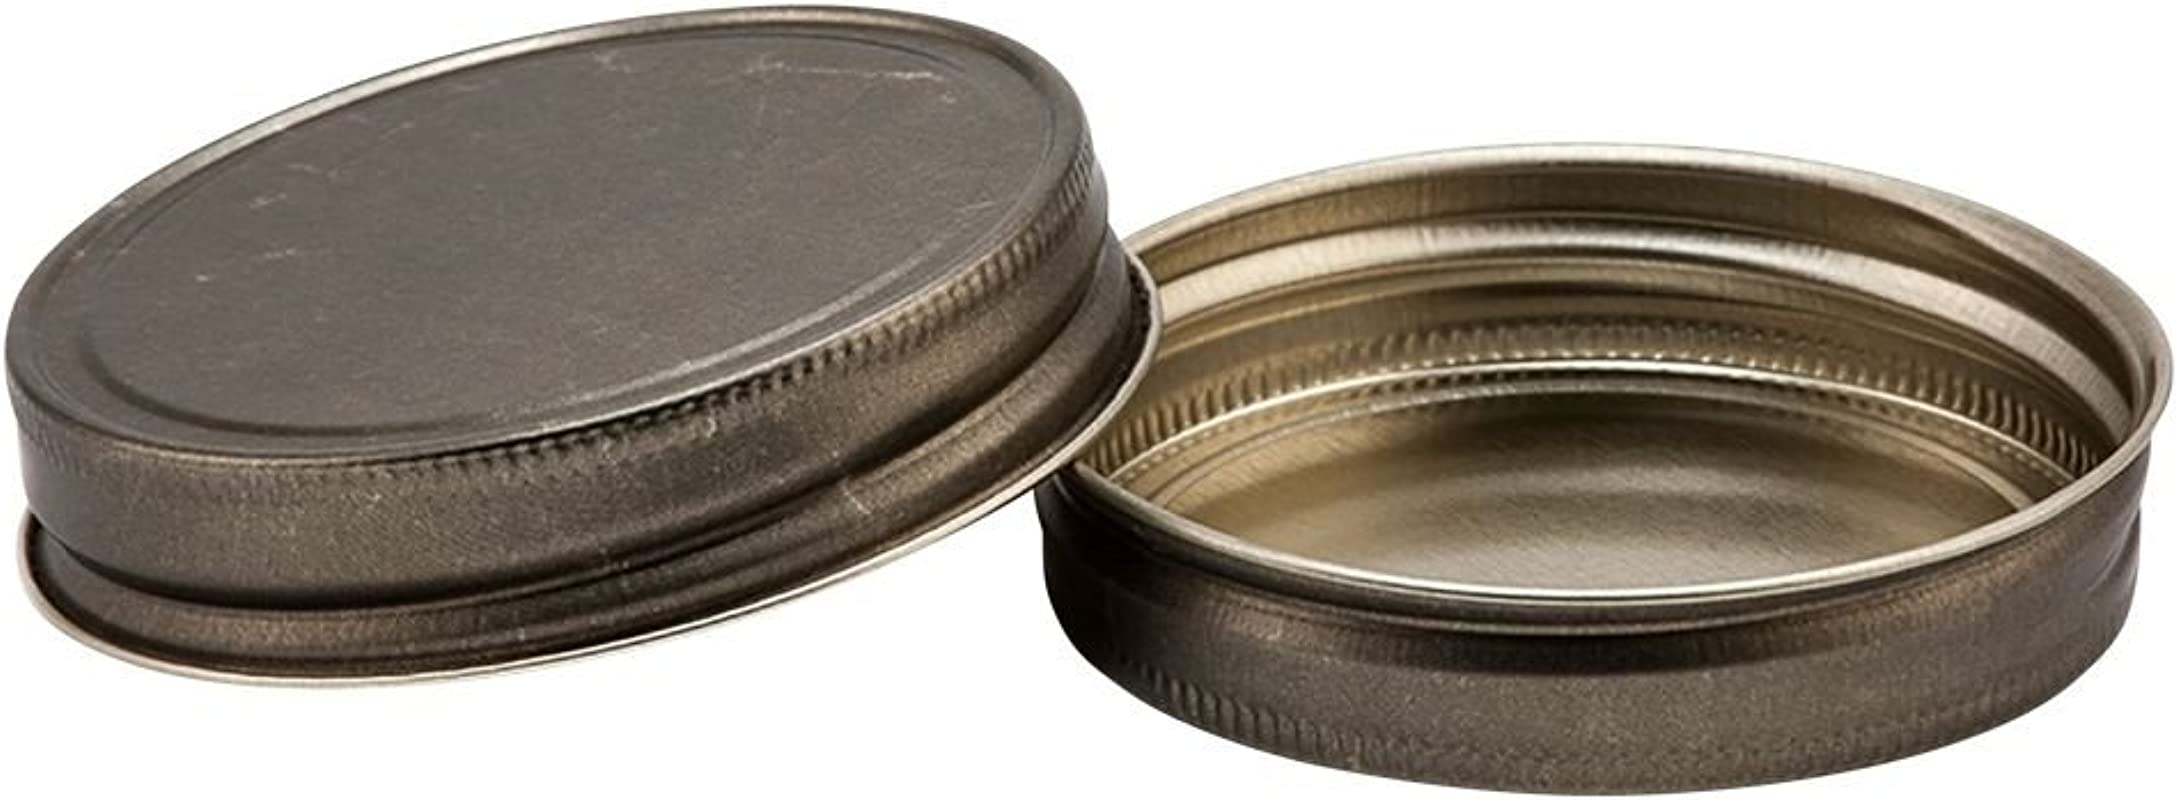 North Mountain Supply Regular Mouth Metal One Piece Mason Jar Unlined Lids Flat Top Pack Of 12 Antique Gold